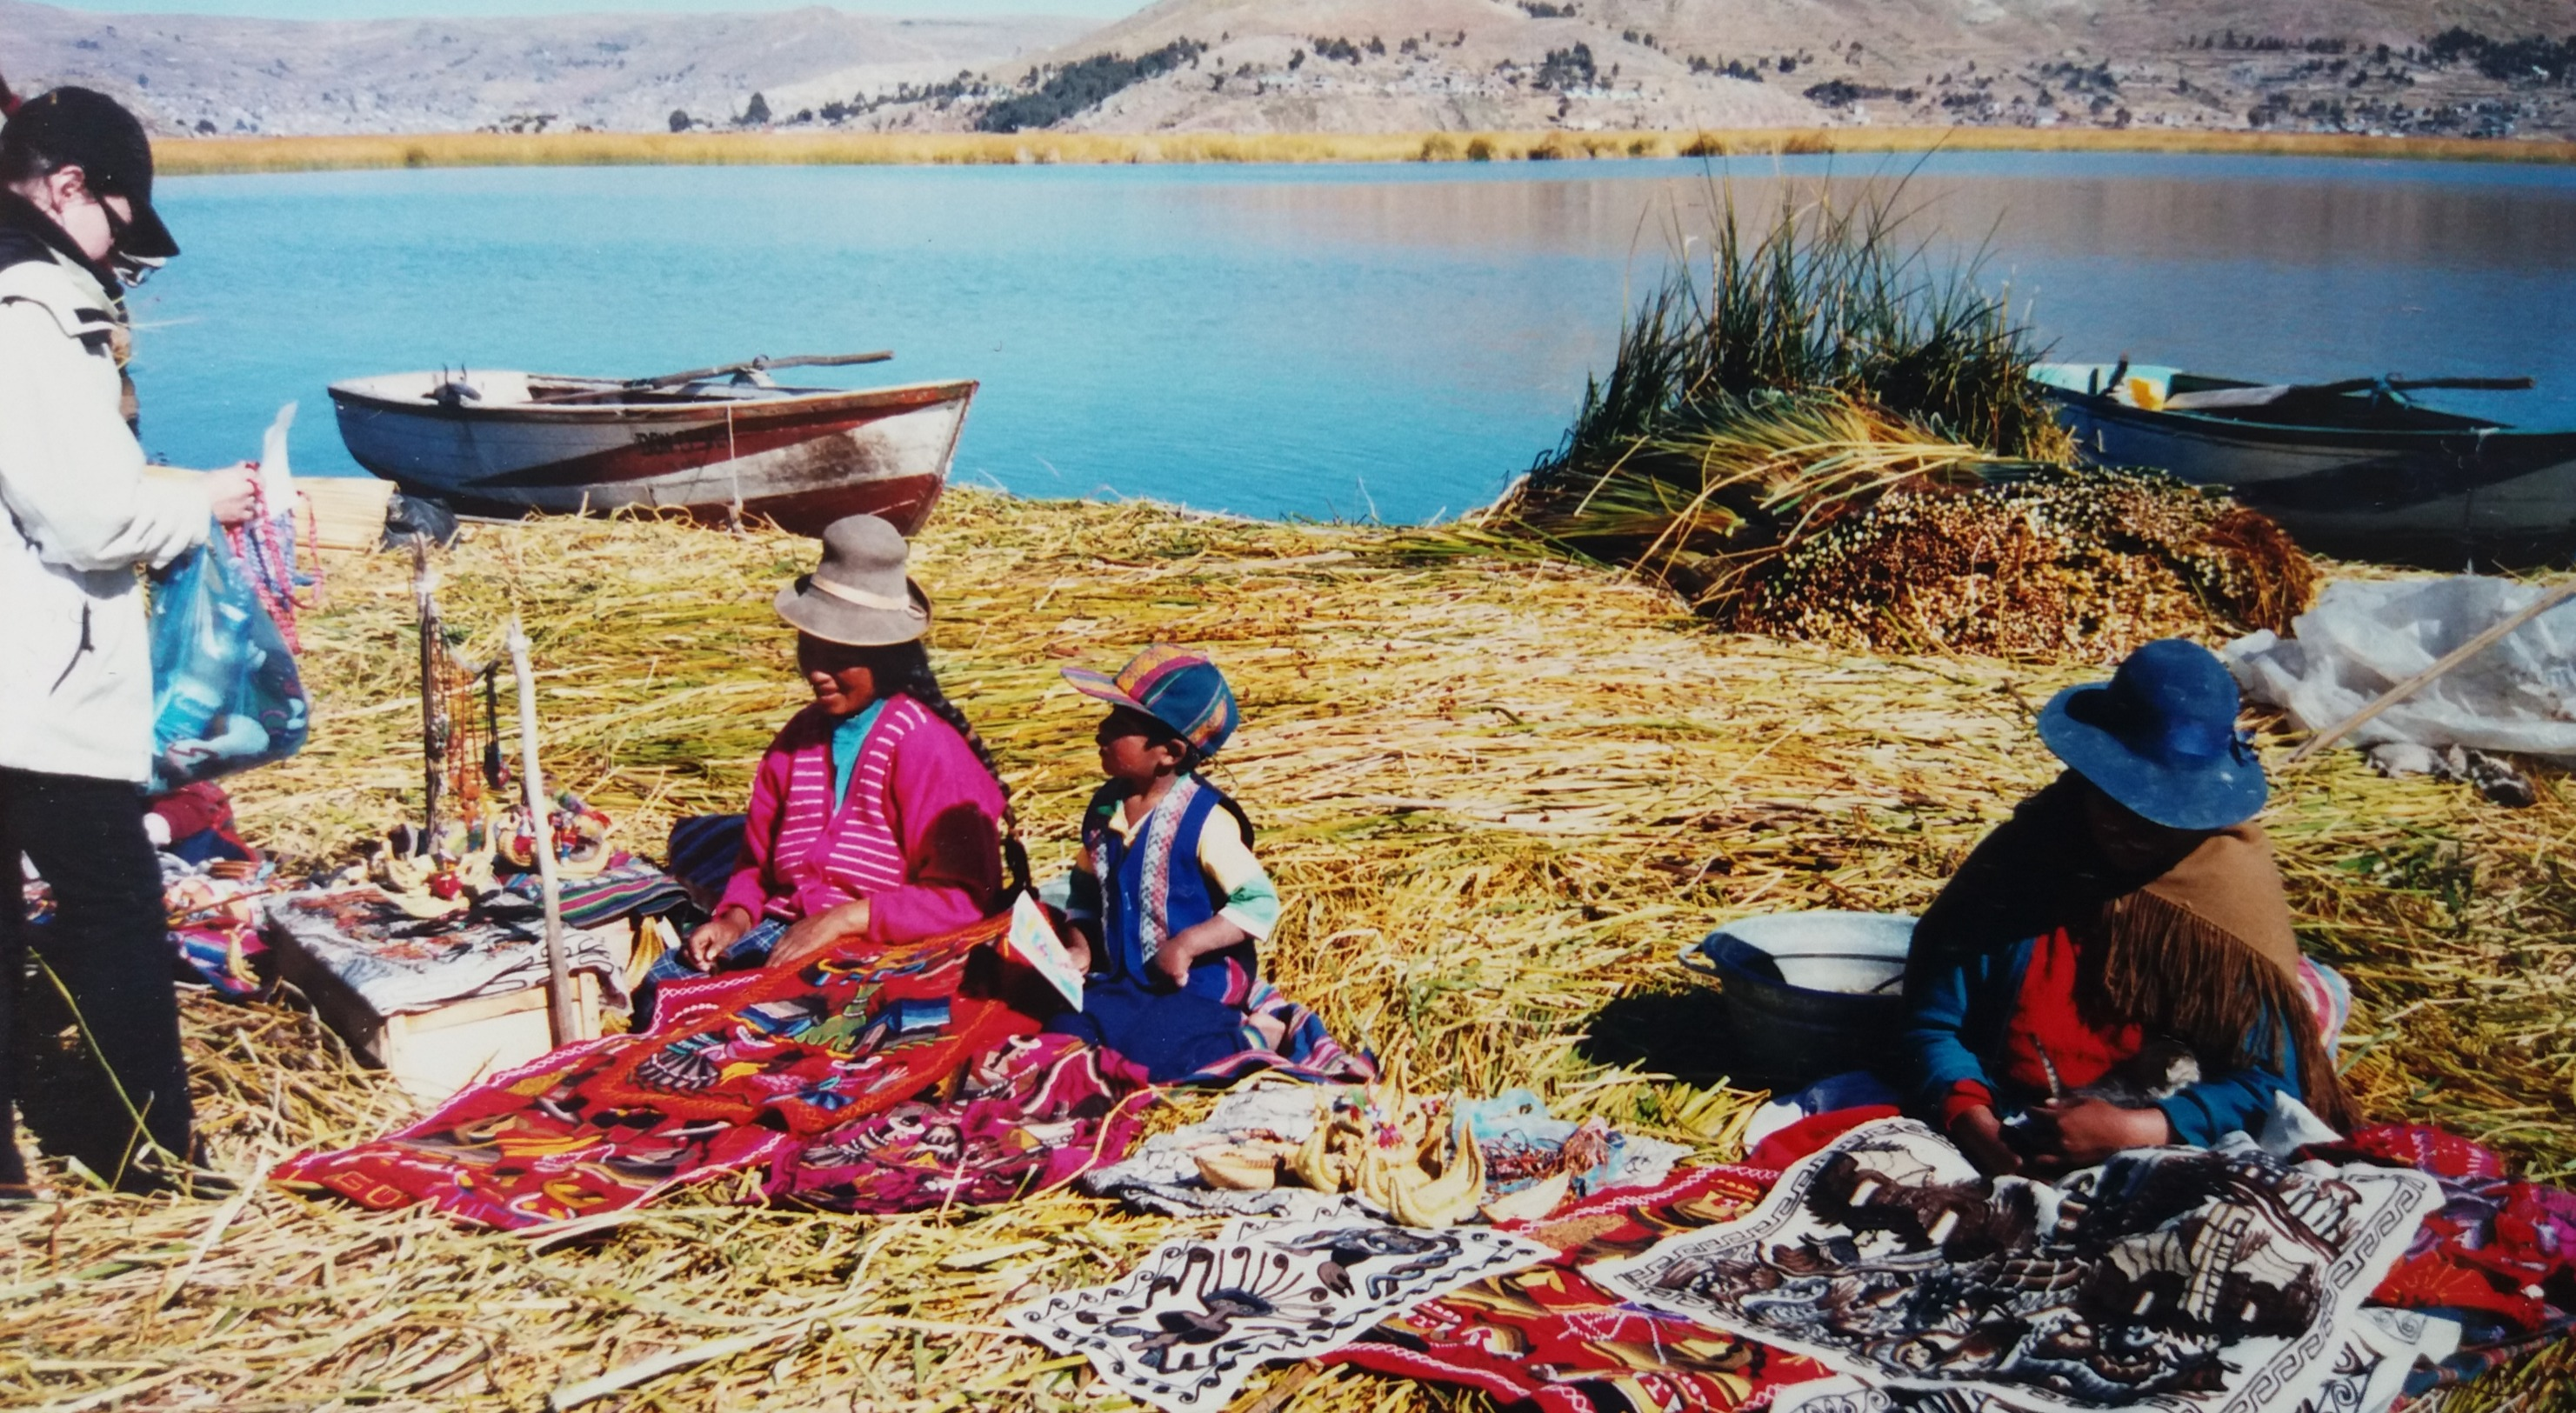 Peru diary - Day 11 - Lake Titicaca